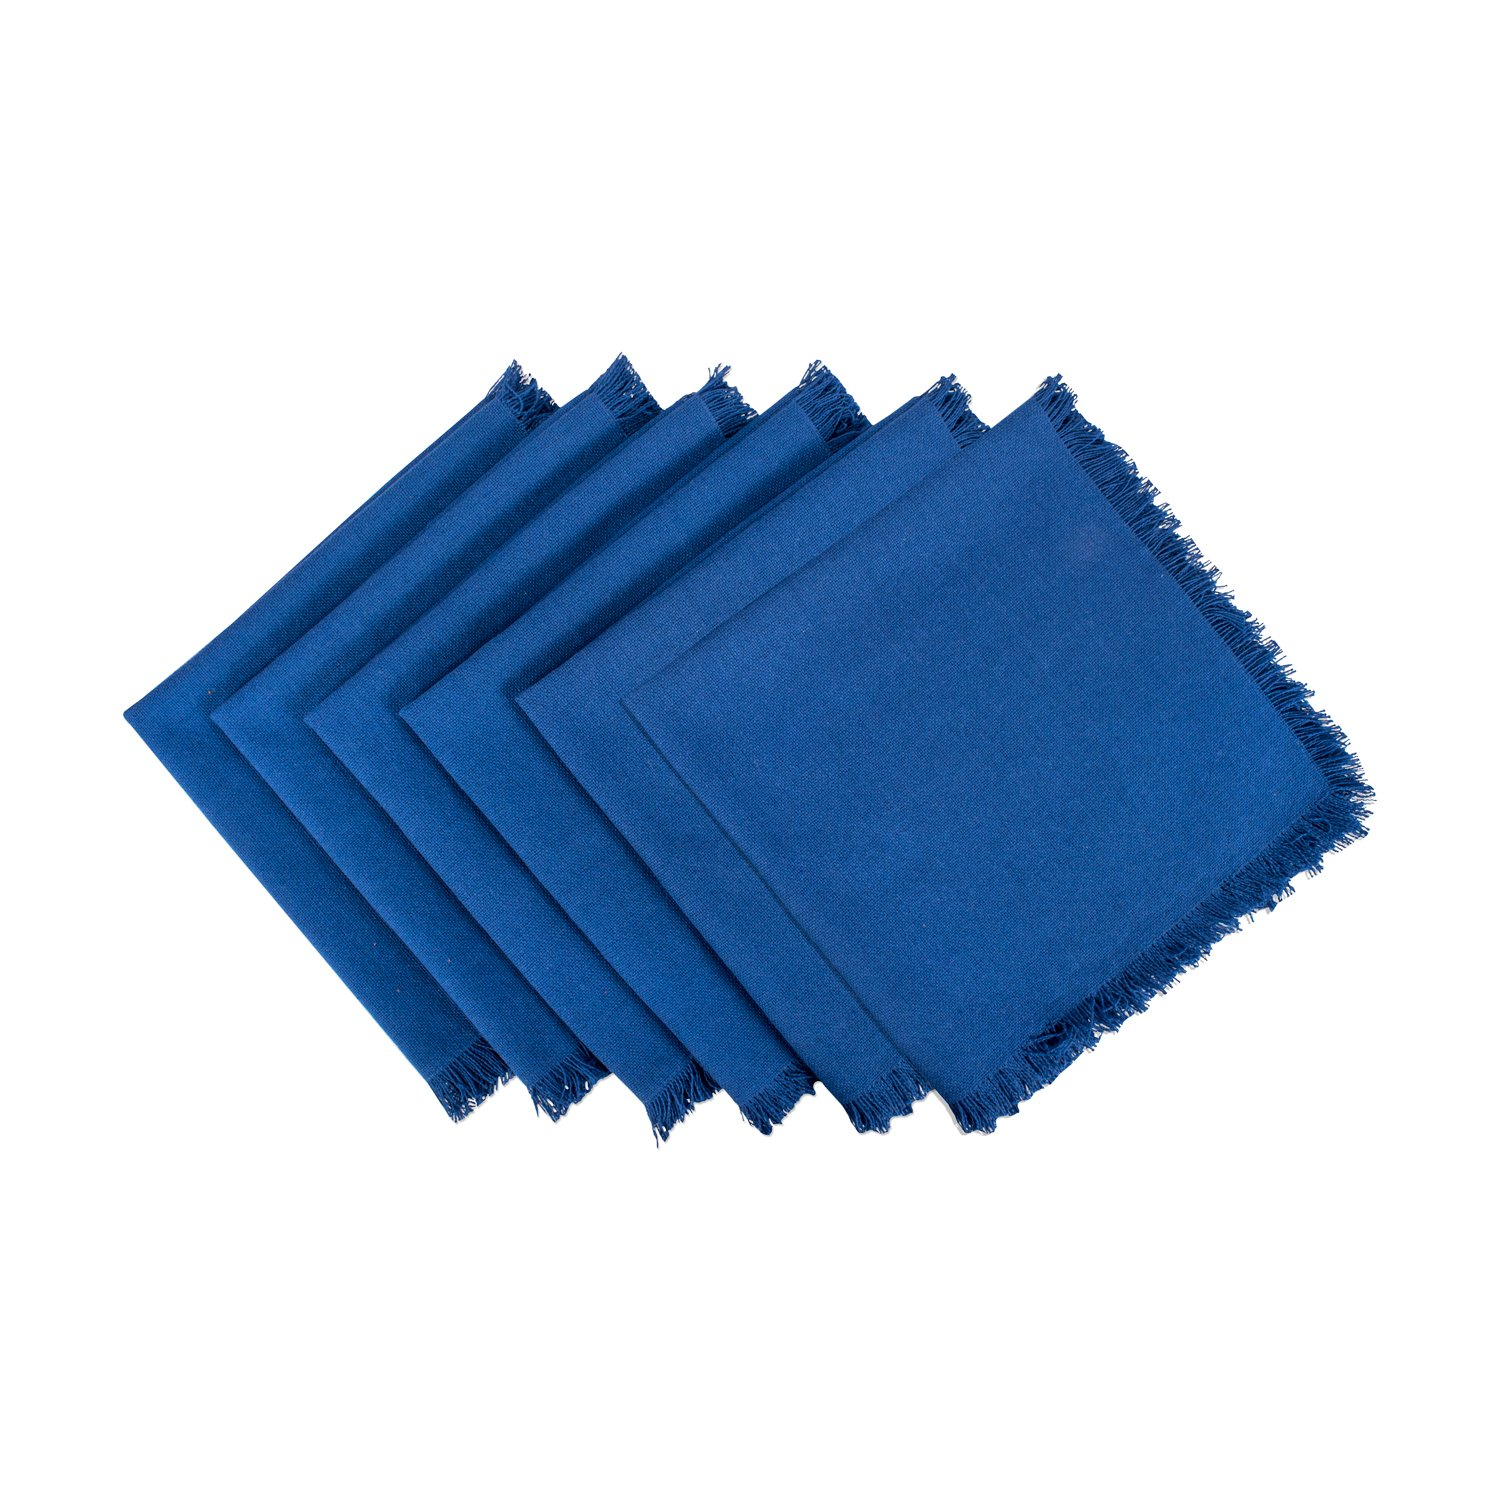 DII 100% Cotton, Oversized Basic Everyday Woven Heavyweight Napkin with Decorative Fringe for Place Settings, Family Dinners, BBQ, and Holidays (20x20'', Set of 6) Navy Blue Solid by DII